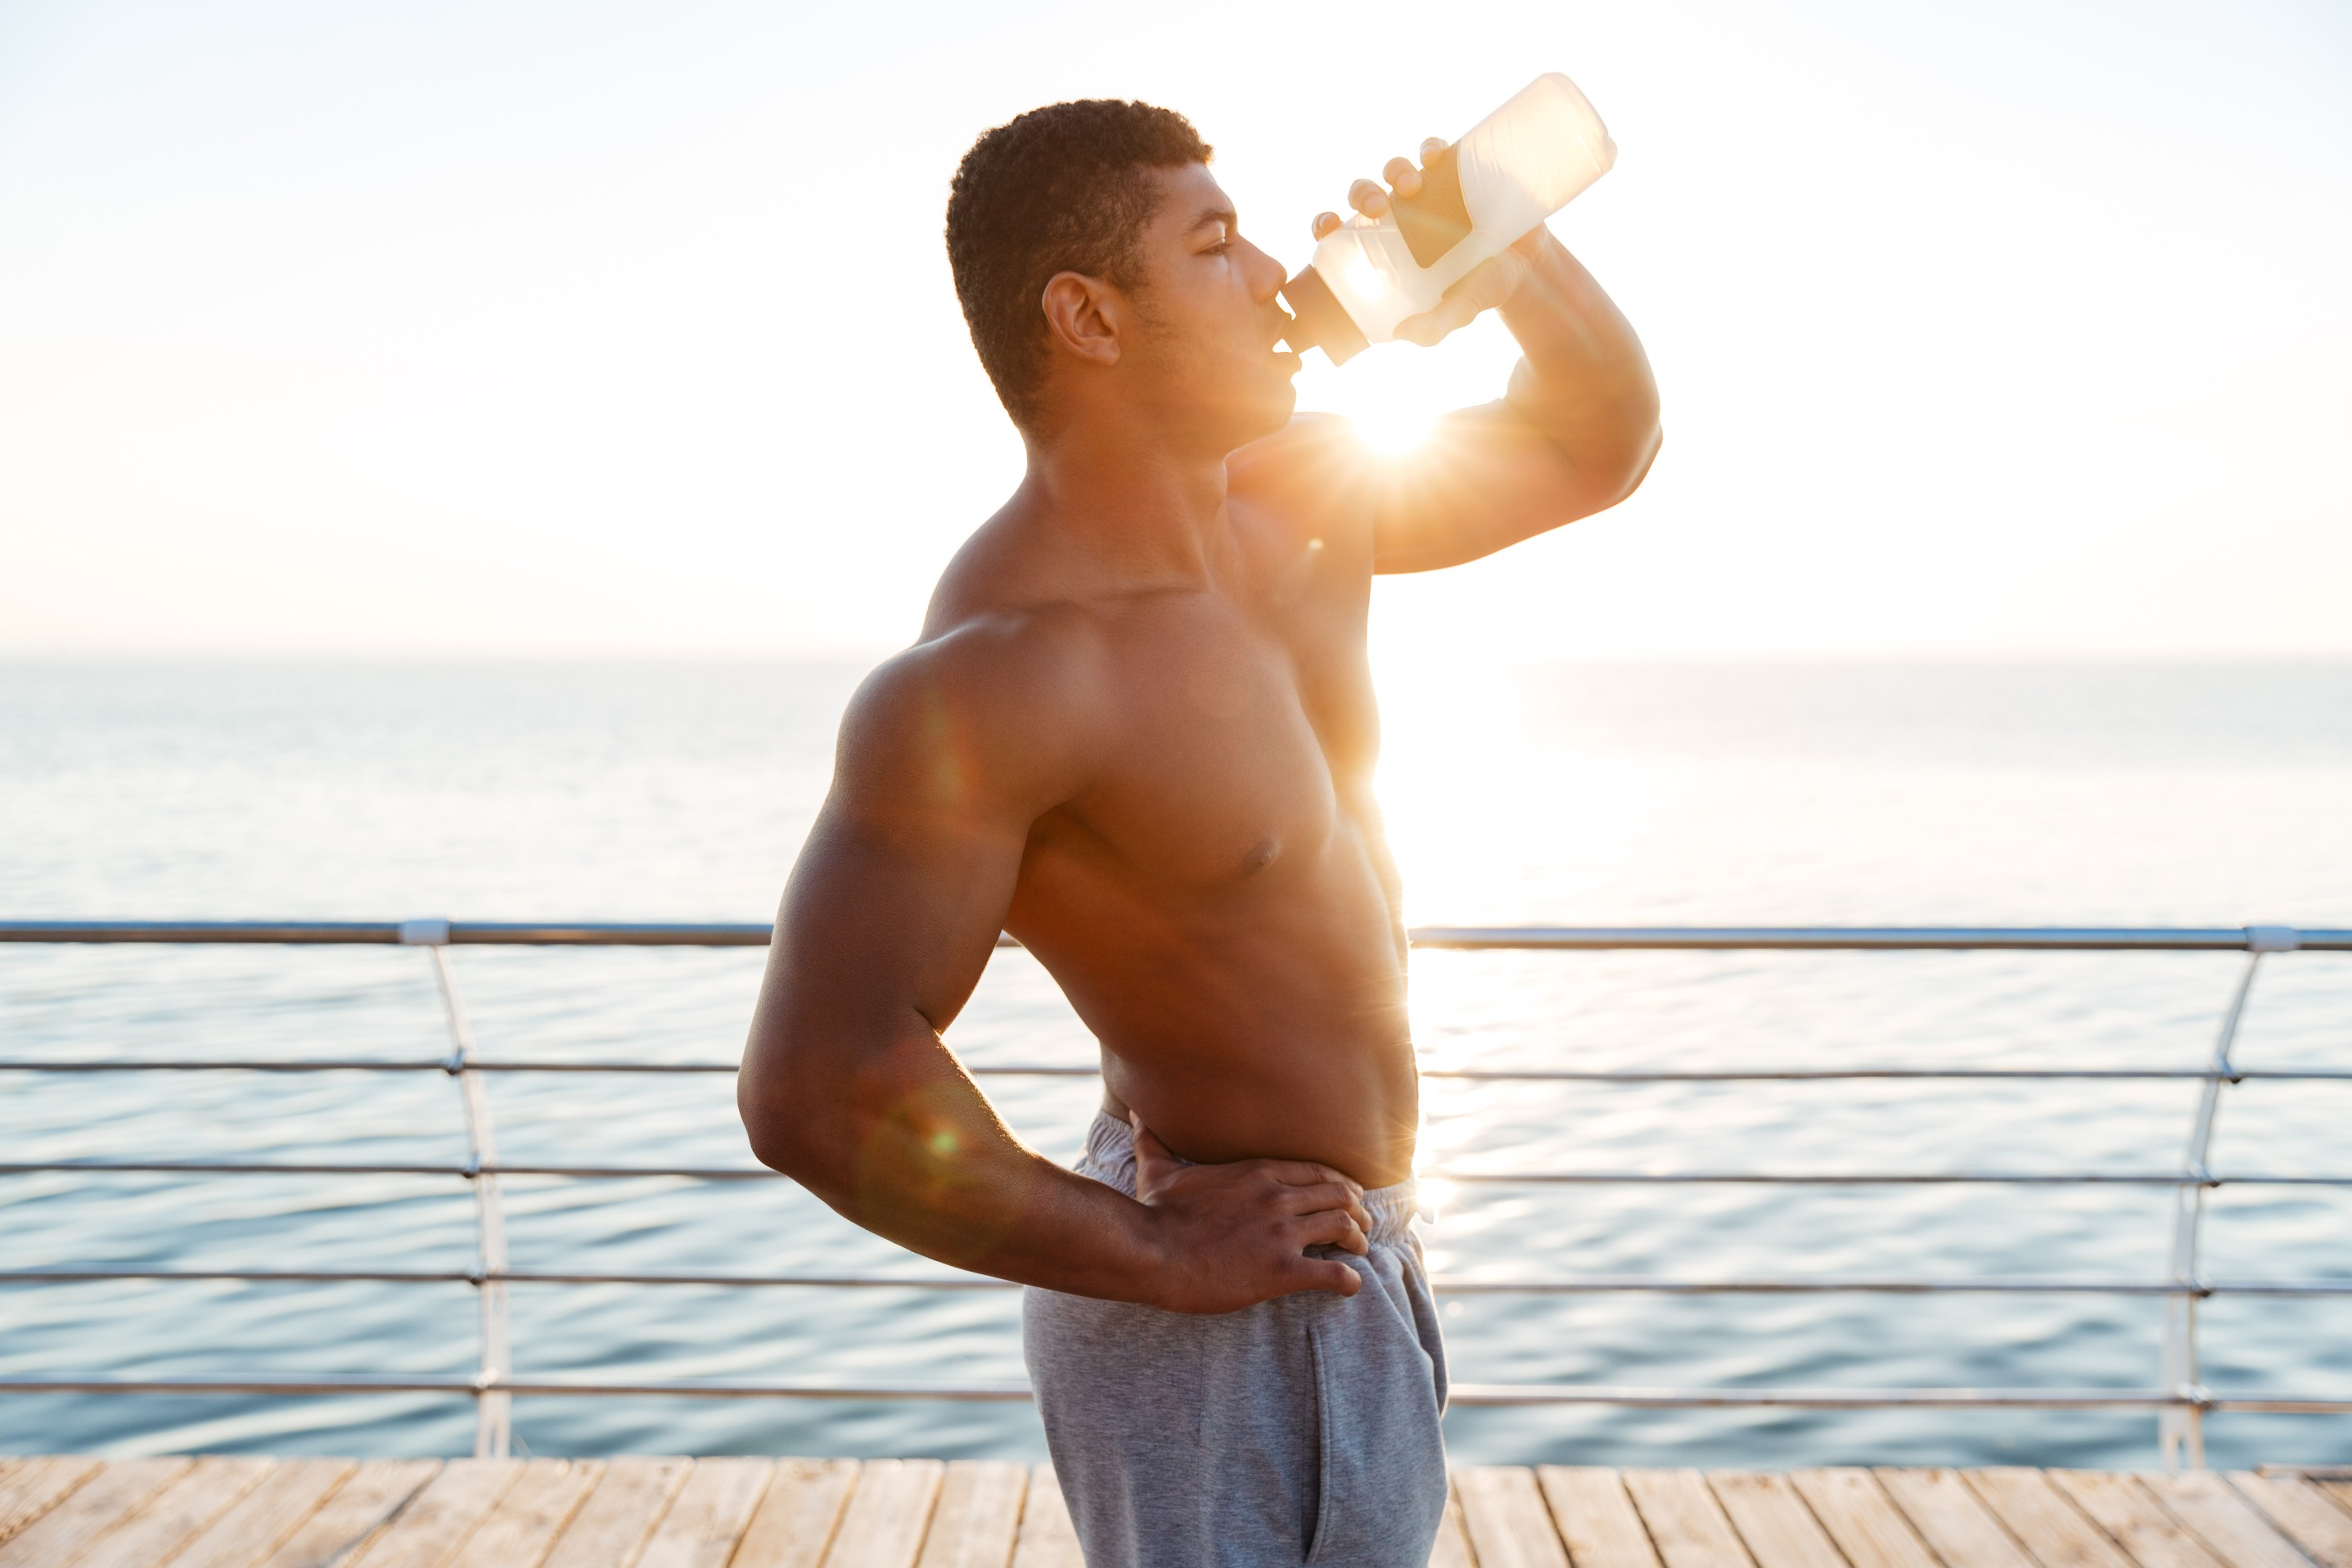 graphicstock-attractive-shirtless-muscular-african-american-young-man-drinking-water-on-pier_ruXwzOdB2l (1).jpg